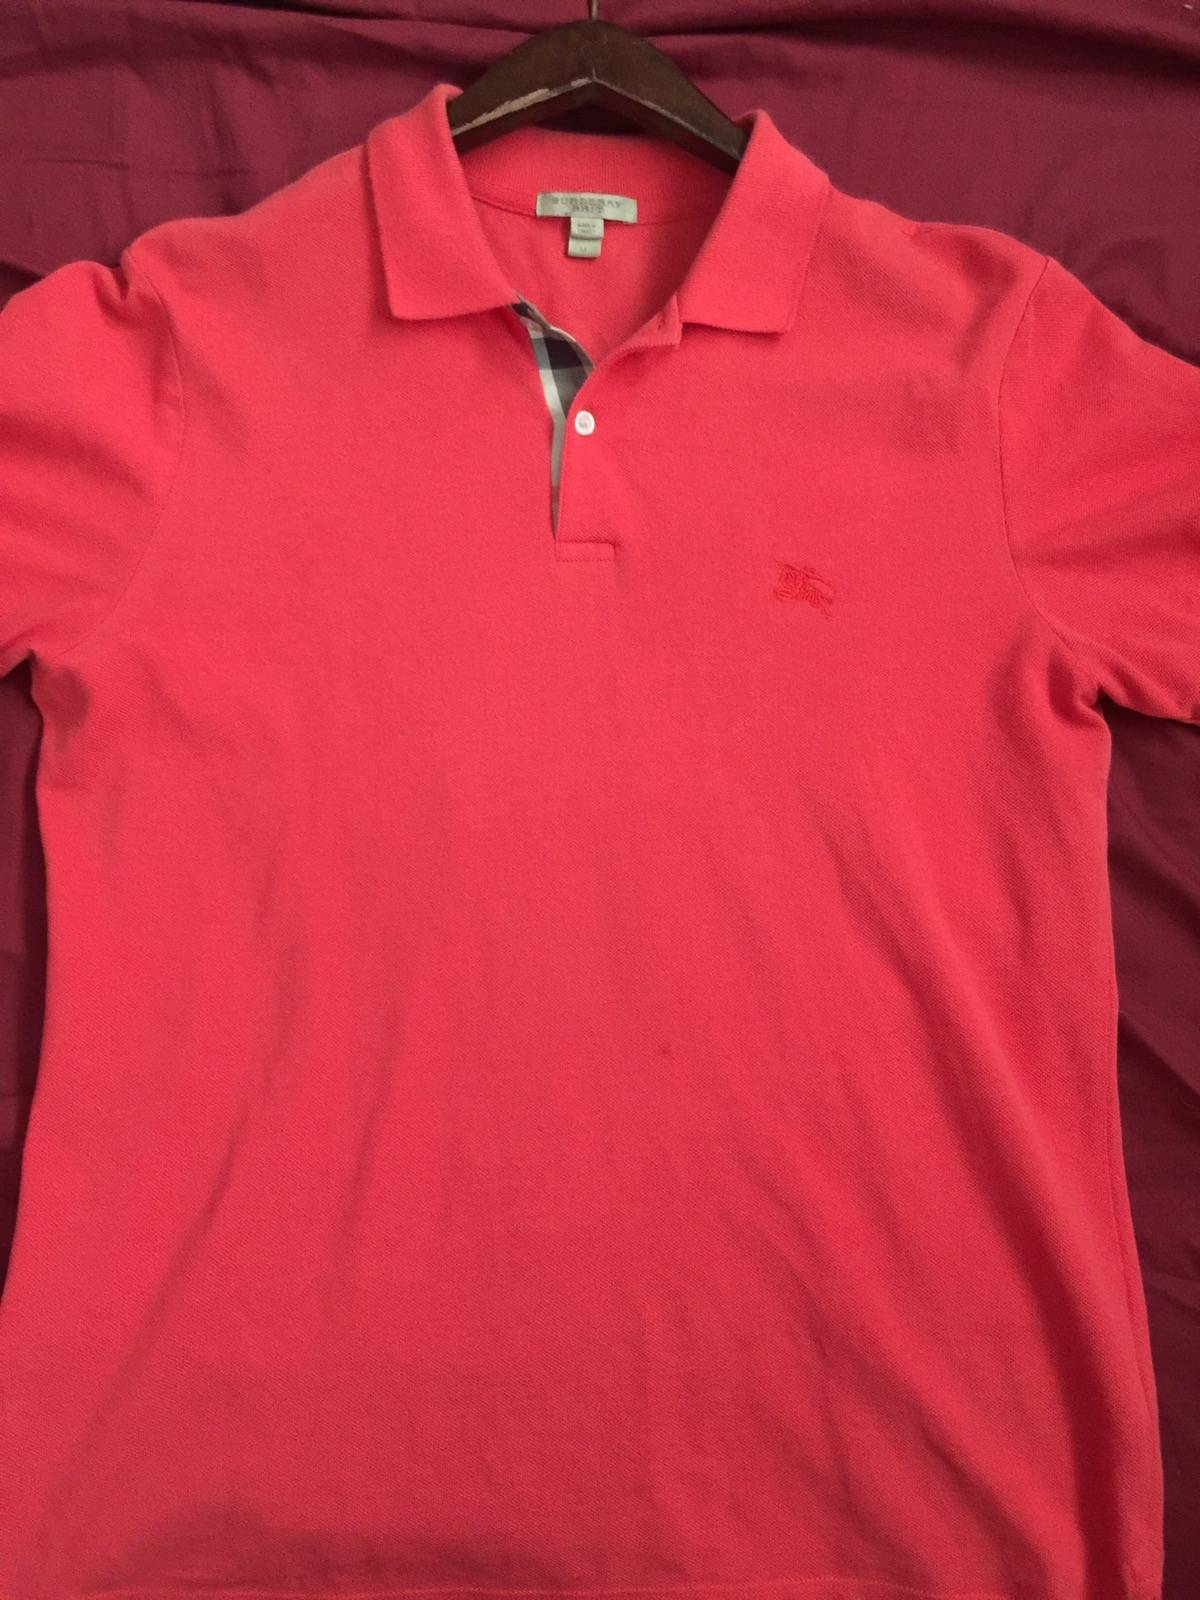 87aa89f18d6 Burberry Mens Orange Burberry Brit Polo Size m - Polos for Sale - Grailed